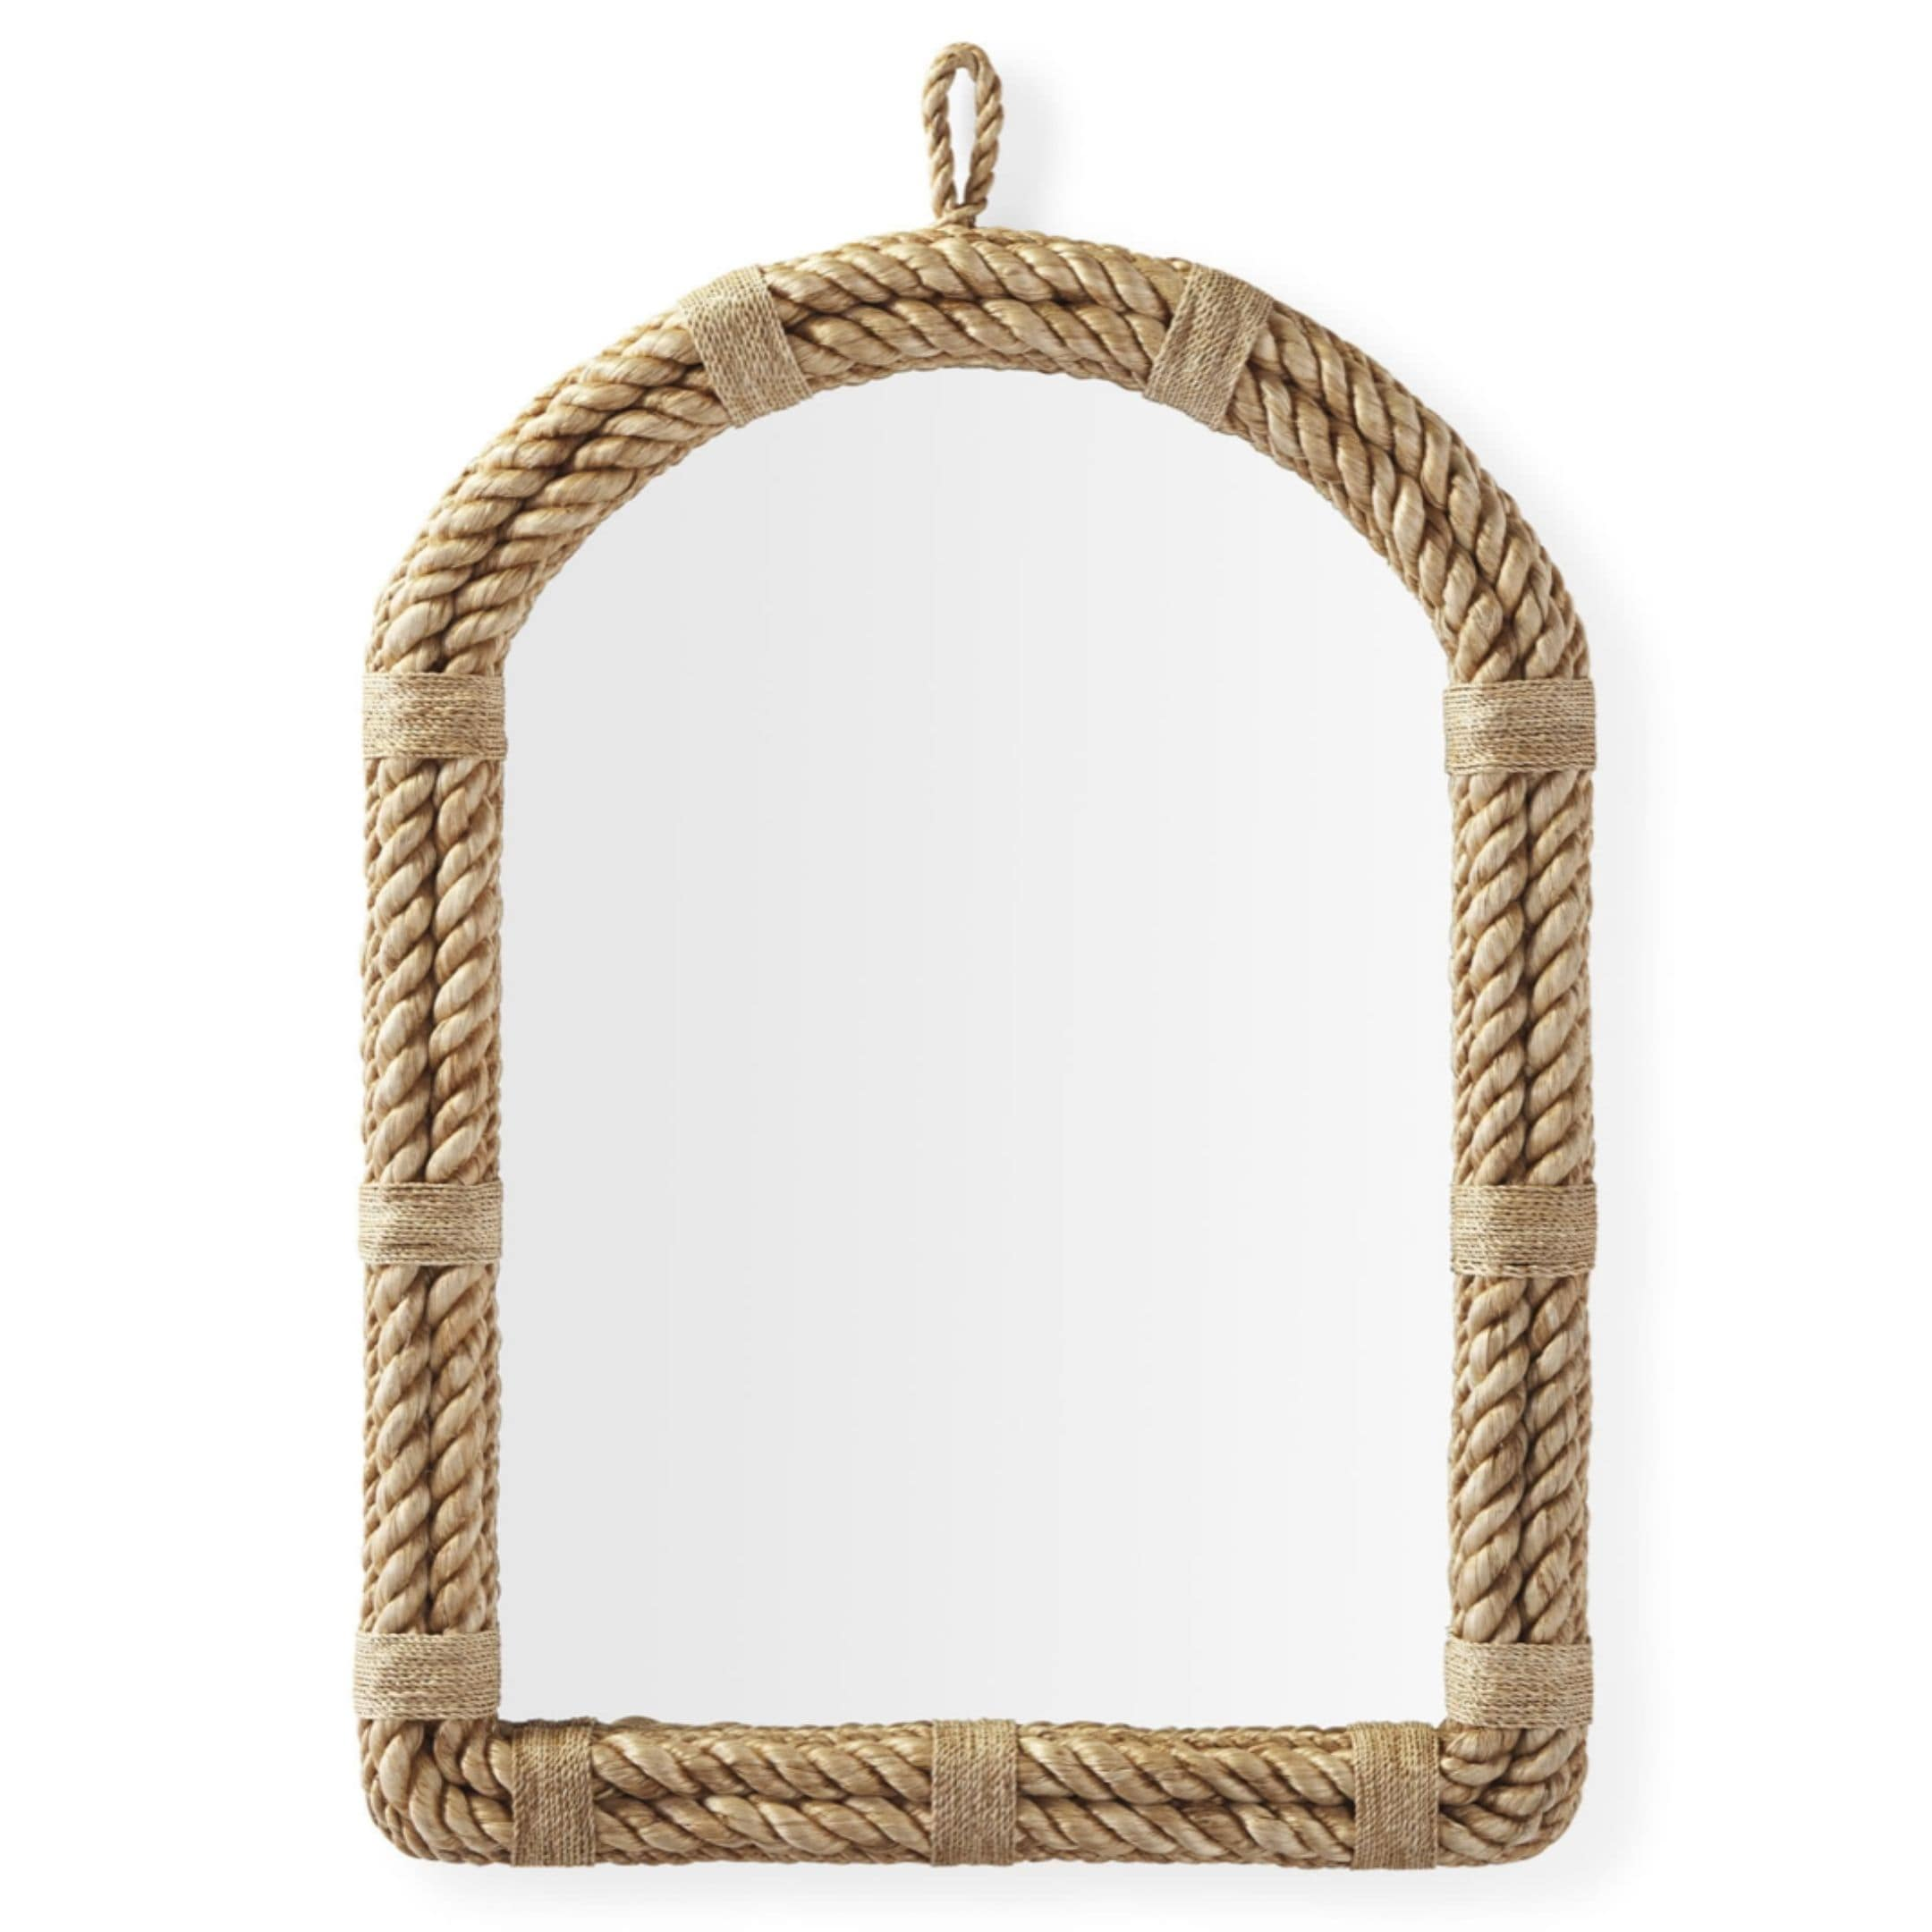 Serena and Lily Rope Mirror